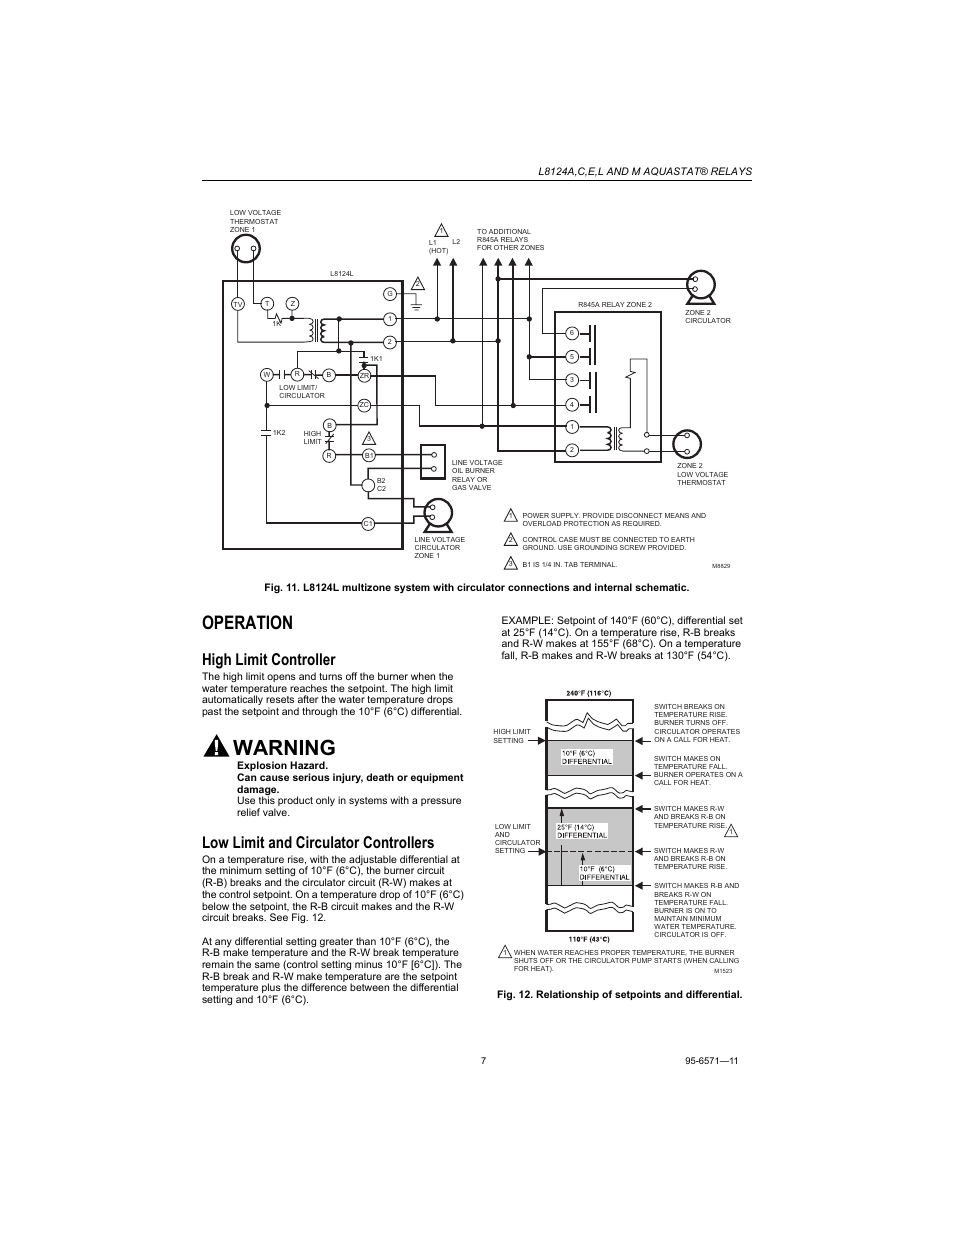 operation  high limit controller  low limit and circulator controllers